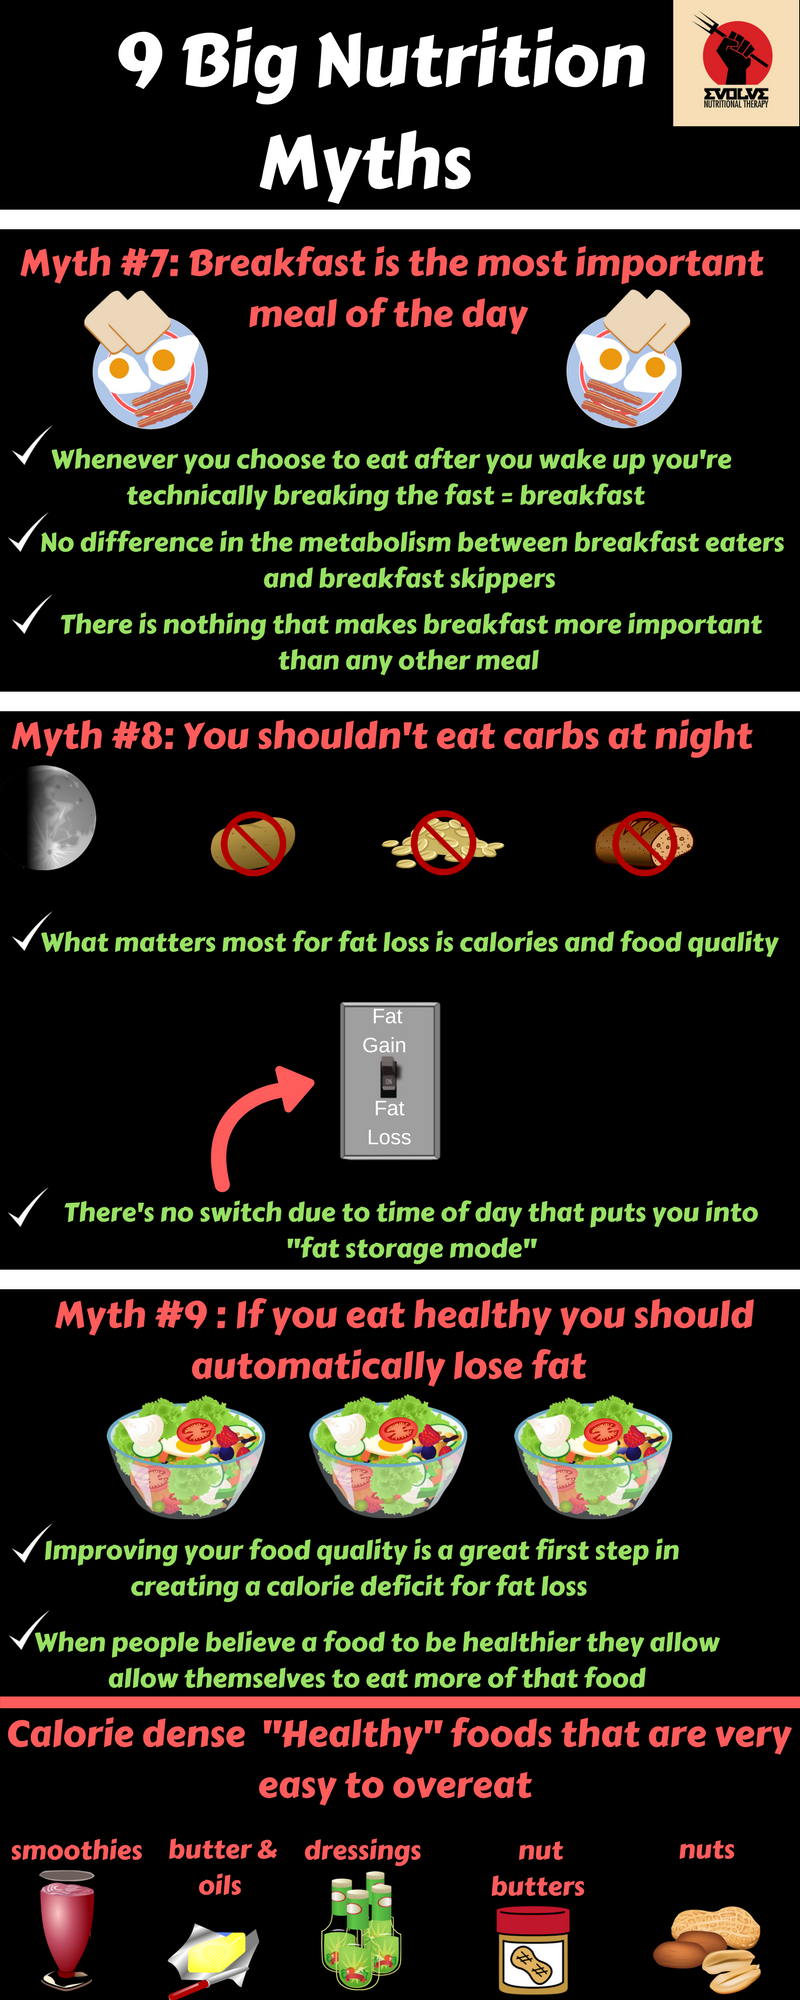 9 Big Nutrition Myths Part 3.png